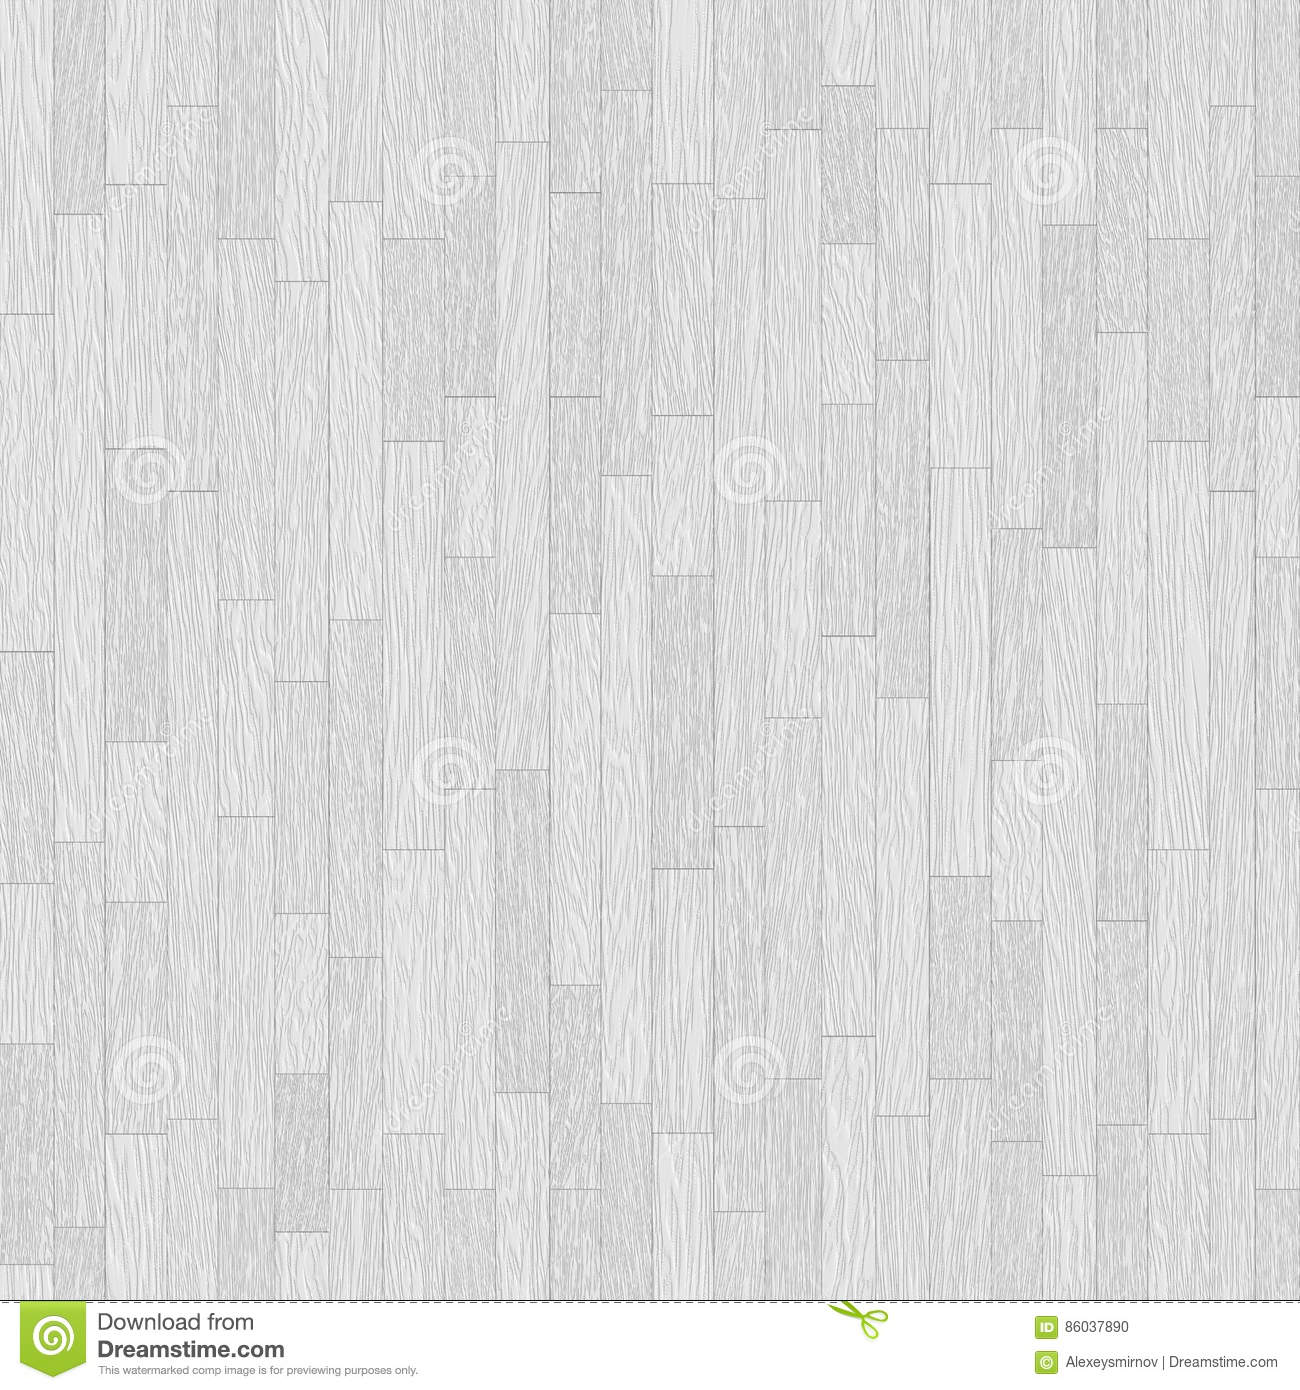 texture sans couture de parquet en bois blanc illustration stock illustration du planche. Black Bedroom Furniture Sets. Home Design Ideas